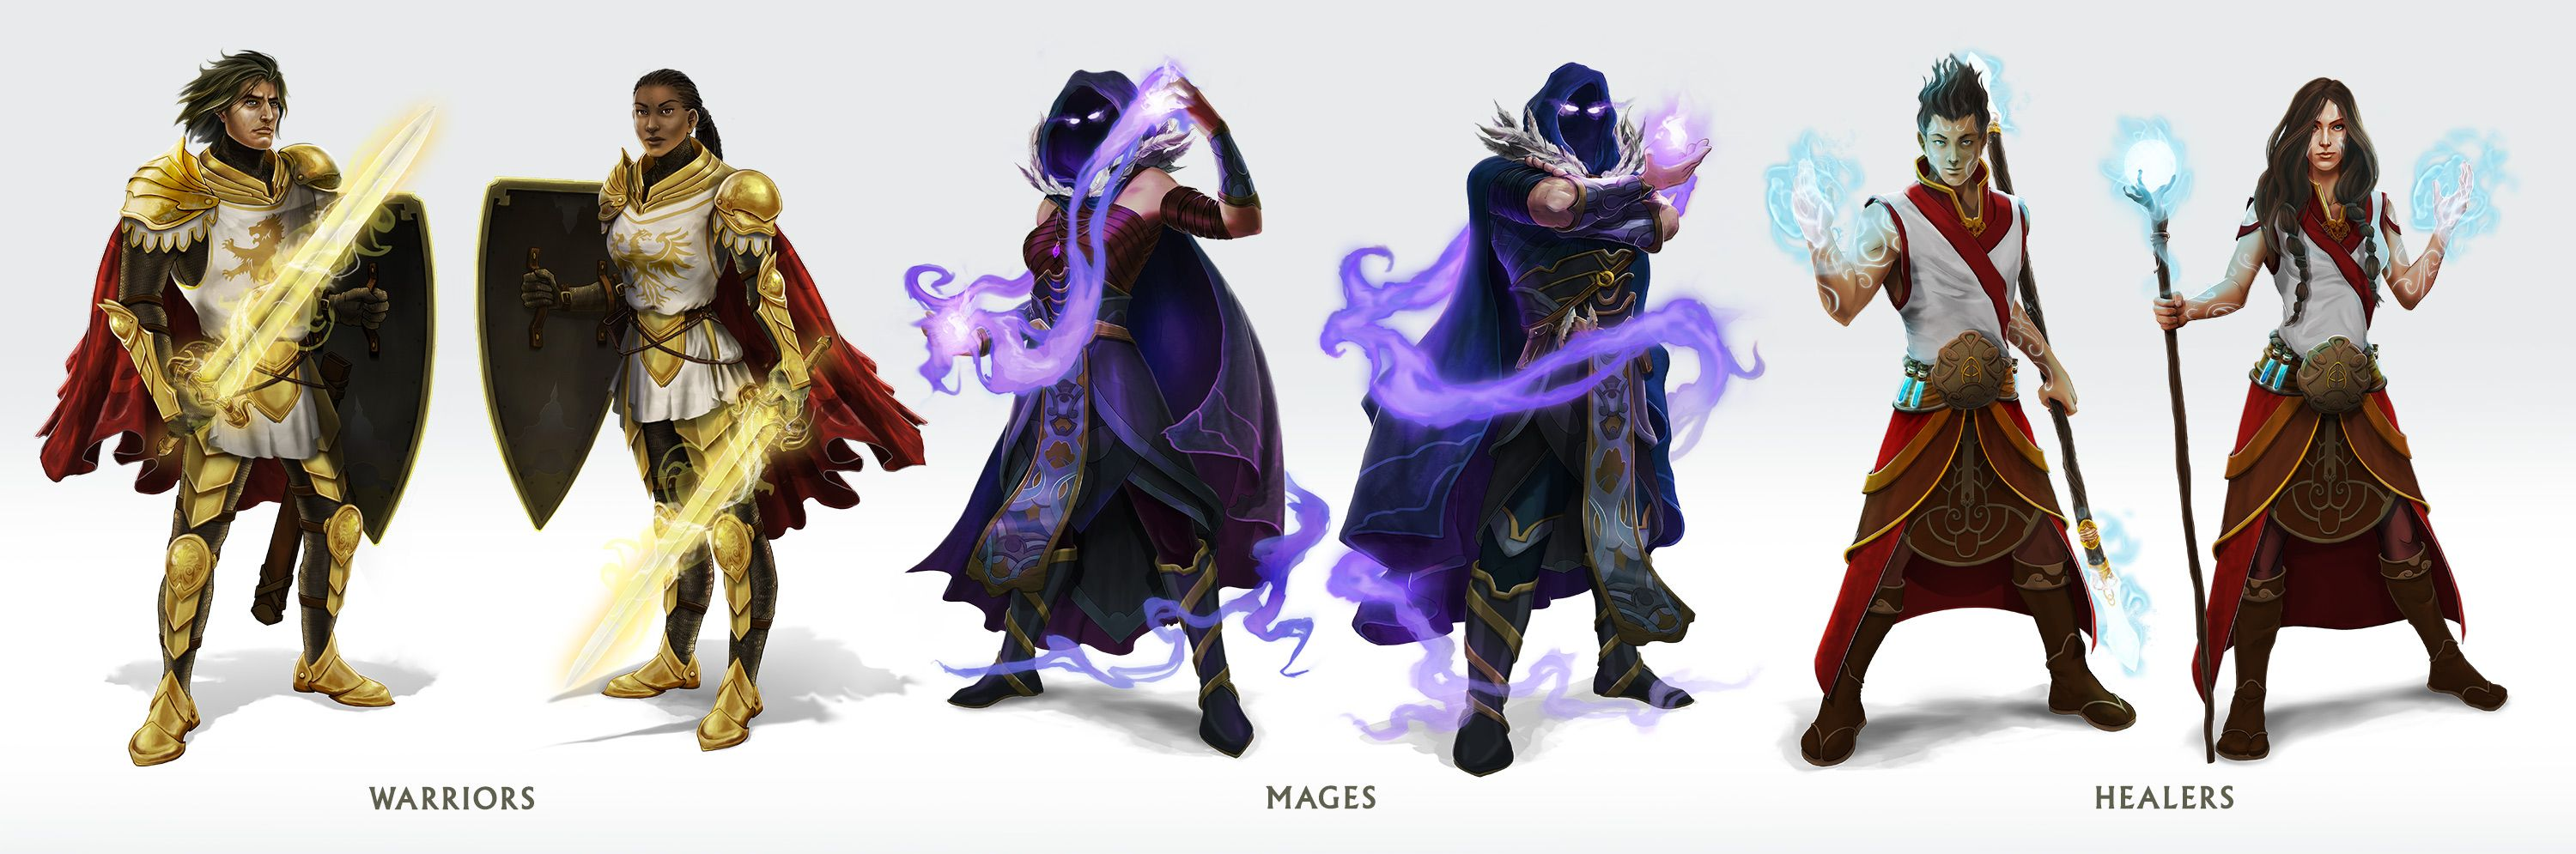 Classcraft Pets For Mages Google Search Physics High School Classroom